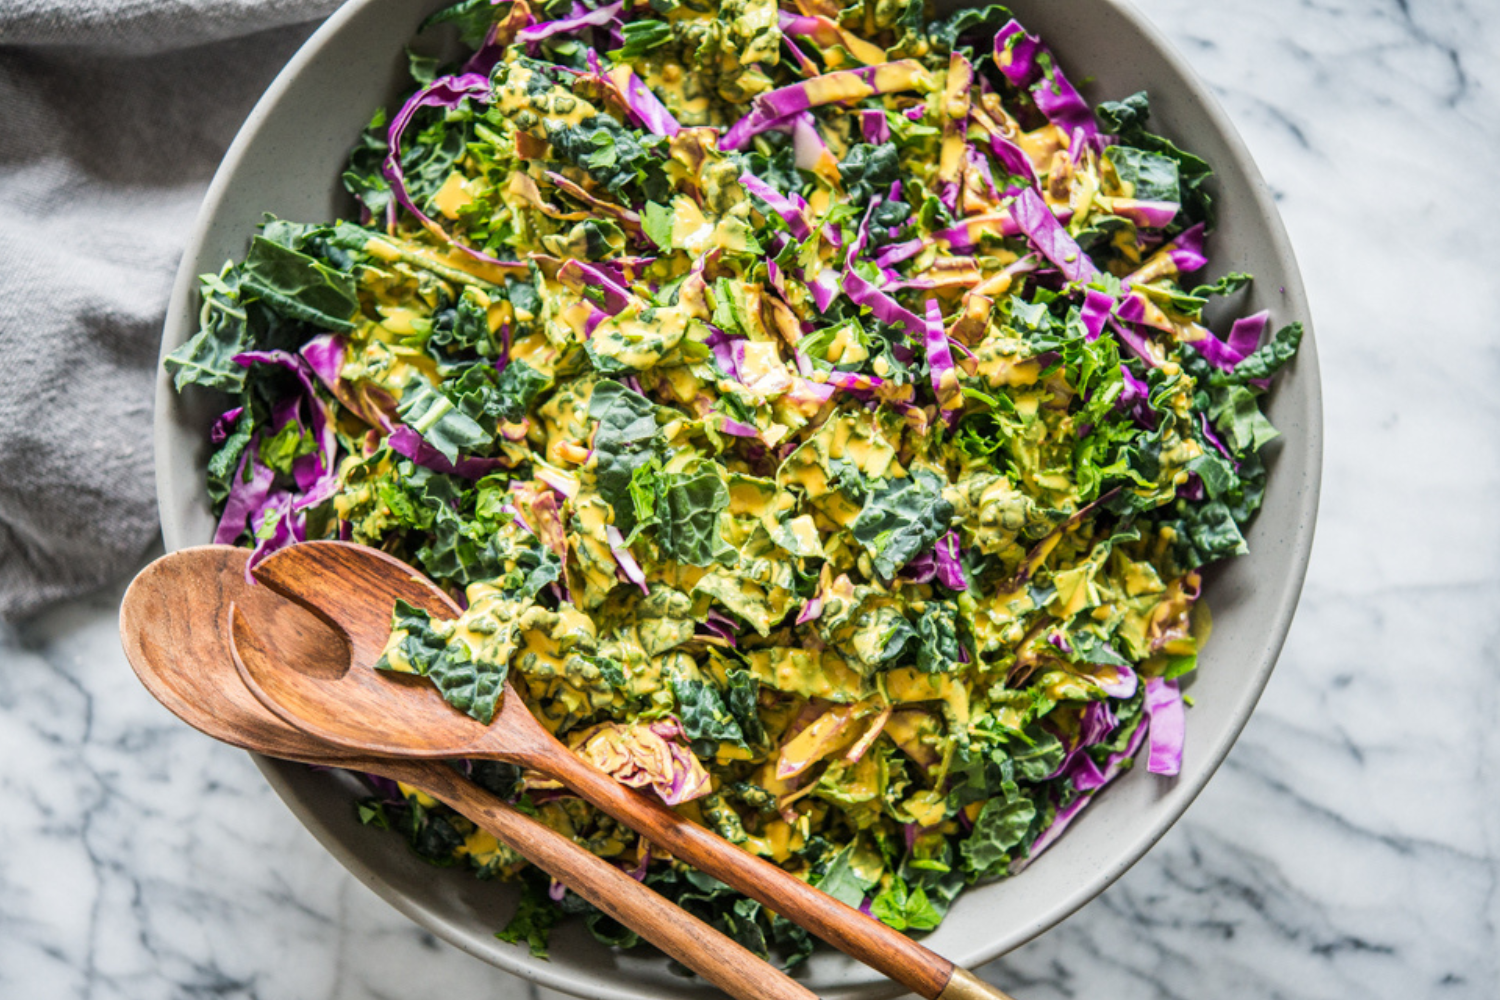 grey bowl on a marble surface filled with colorful kale and purple cabbae with a bright yellow dressing